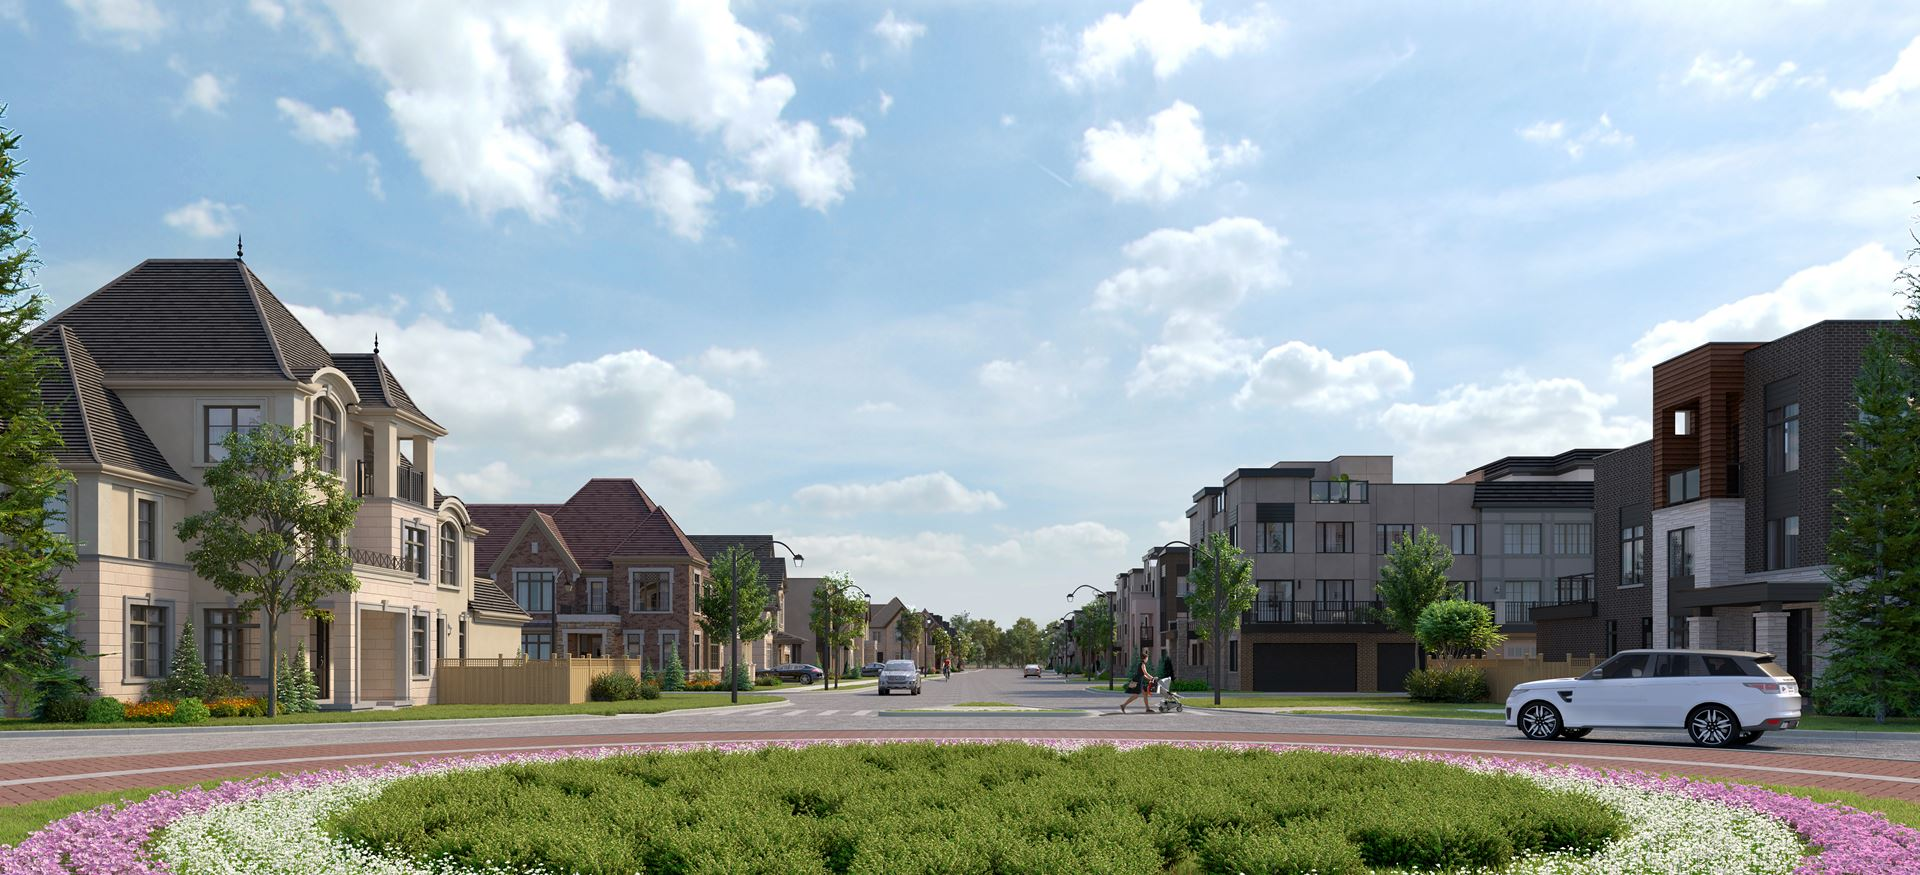 Rendering of Union Village streetscape and court.